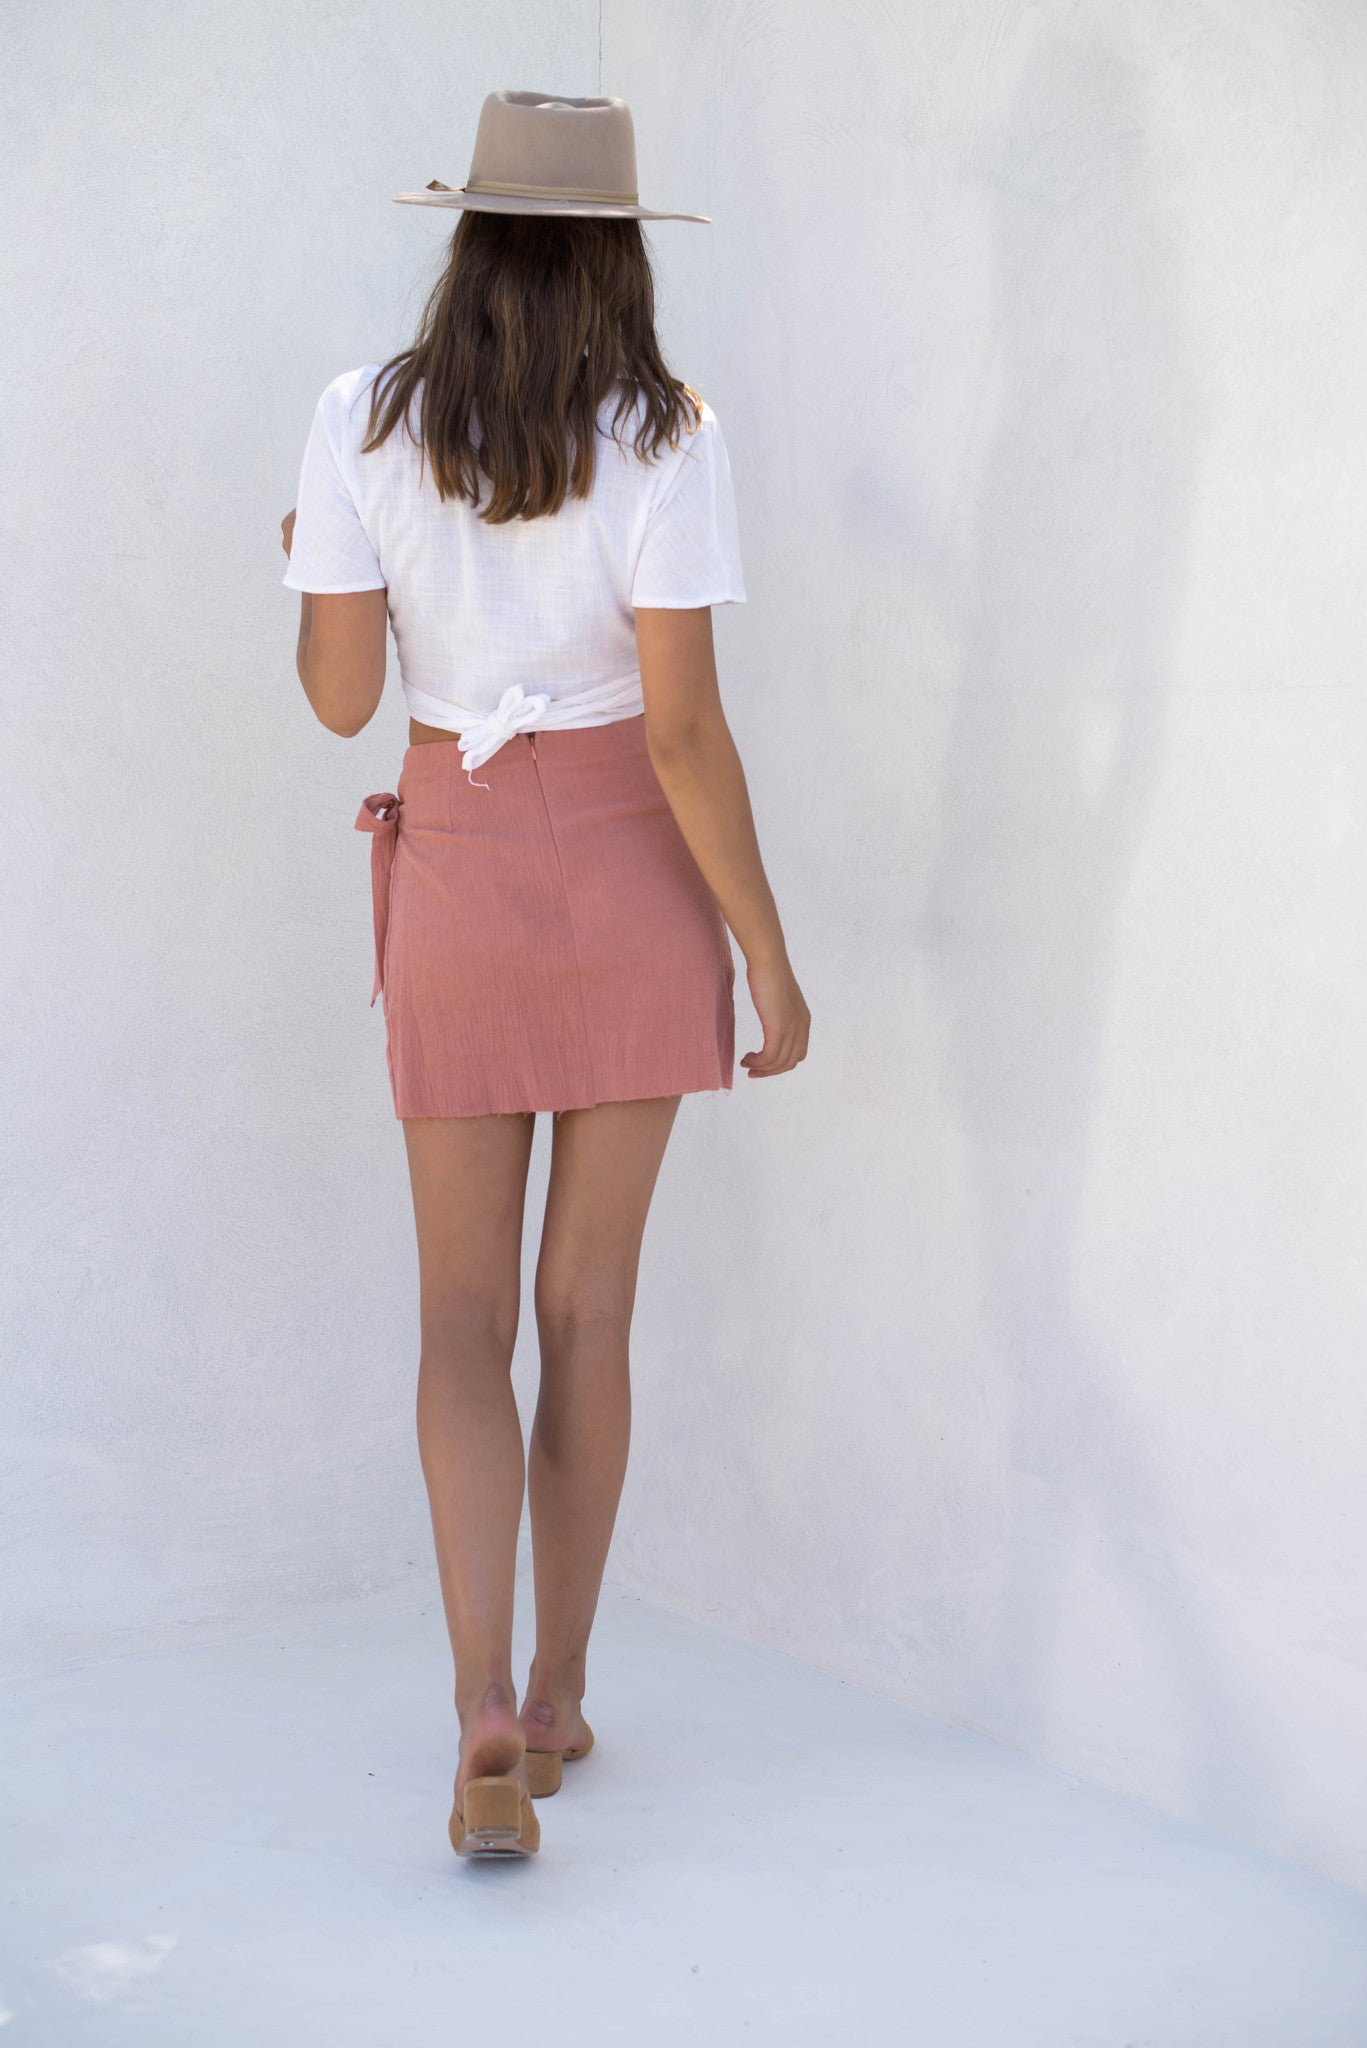 Celeste Skirt - Pale Peach